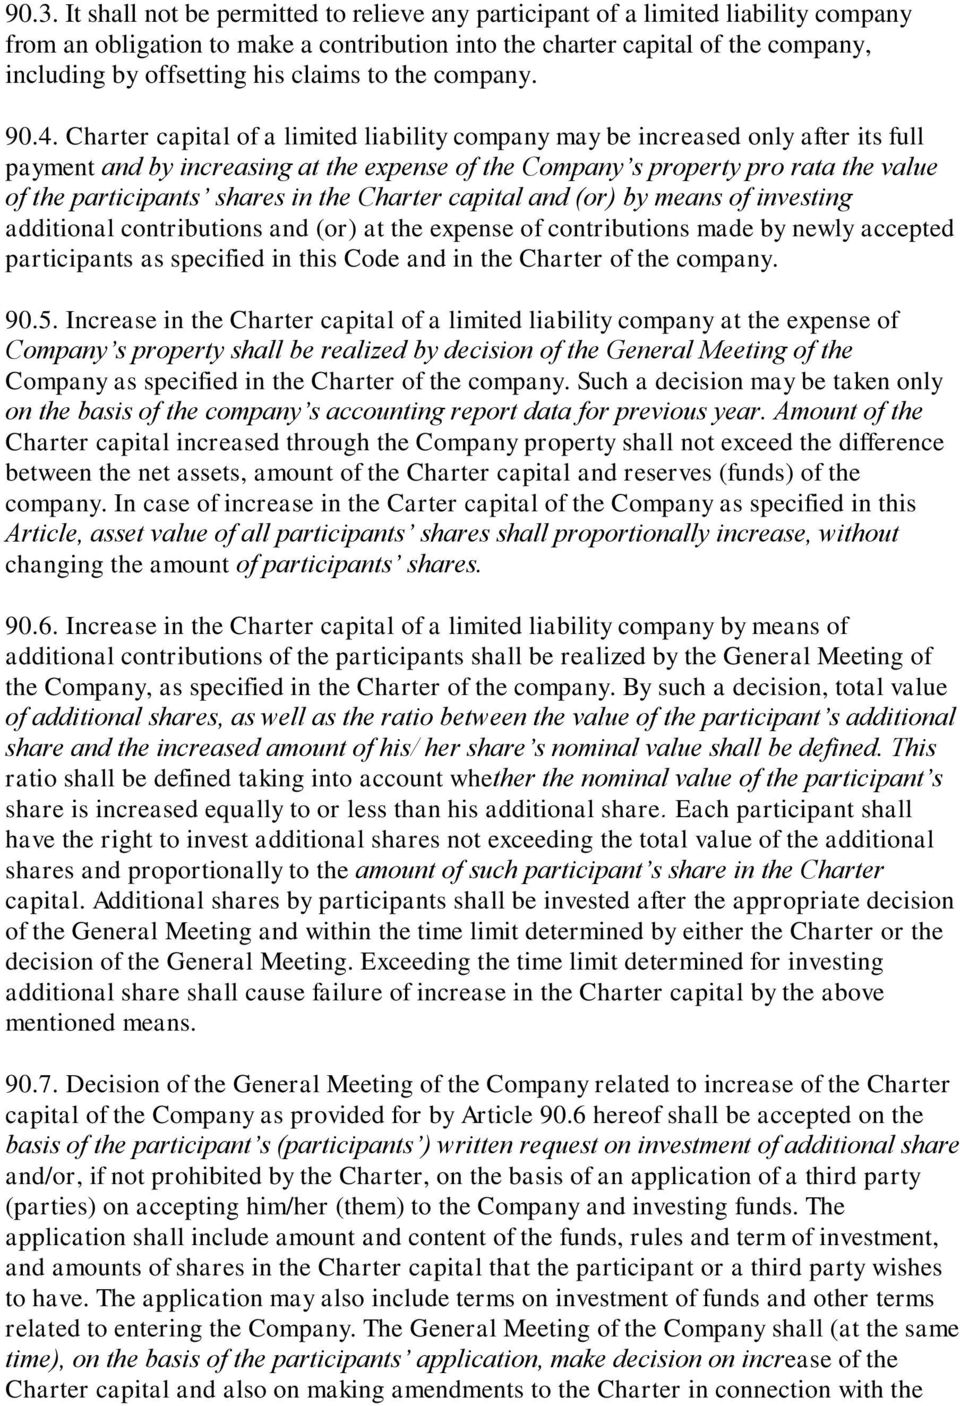 Charter capital of a limited liability company may be increased only after its full payment and by increasing at the expense of the Company s property pro rata the value of the participants shares in